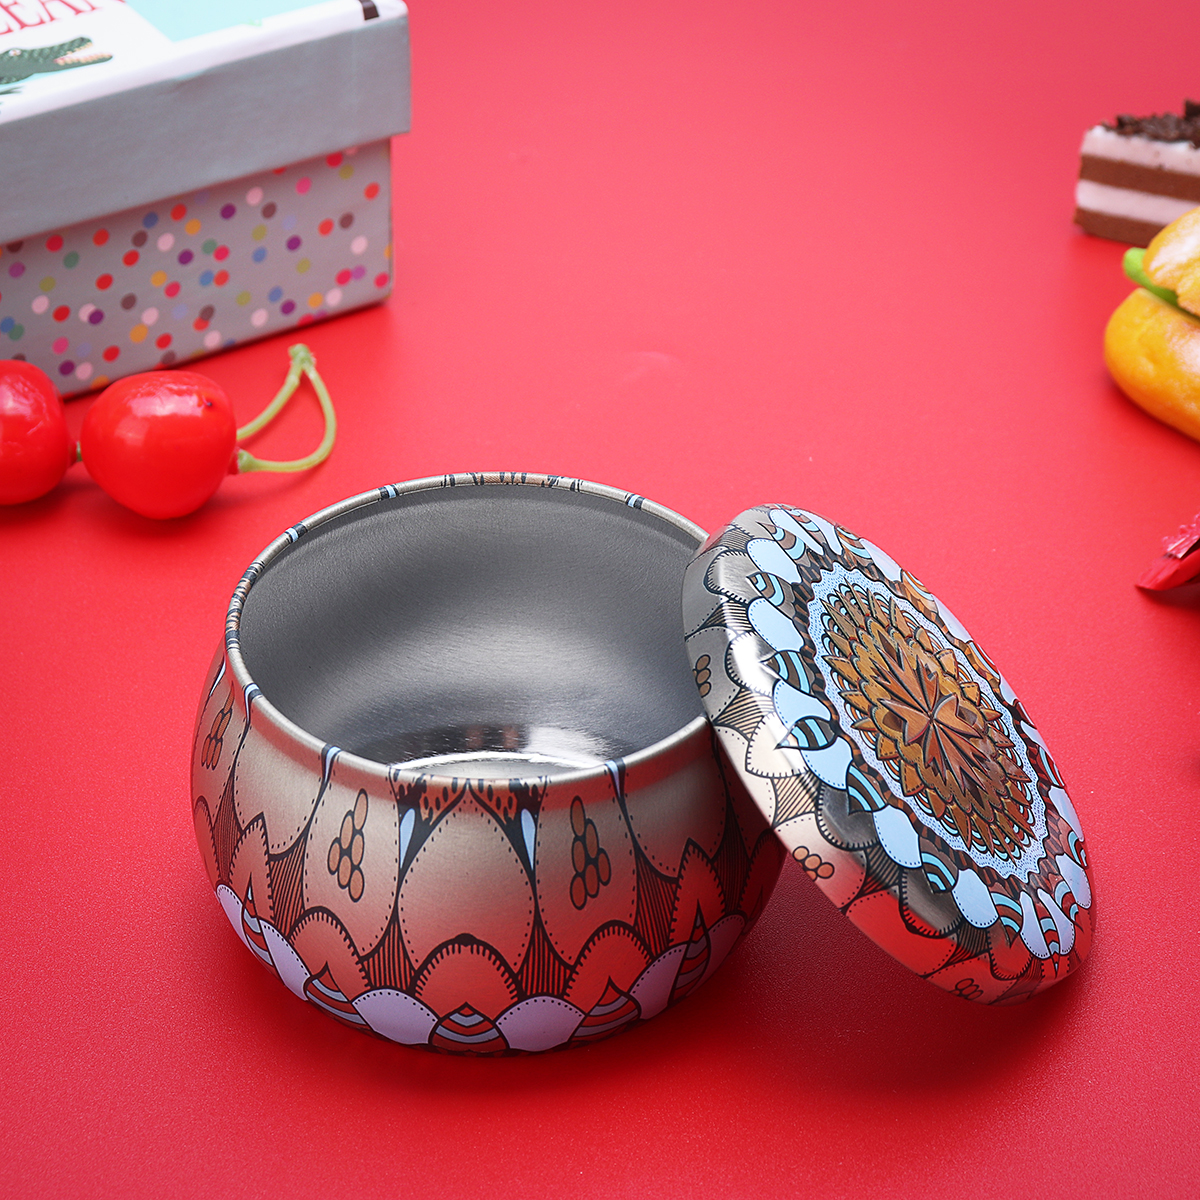 Retro Round Tin Box Tea Candy Jewelry Coin Storage Container Case Wedding Favors